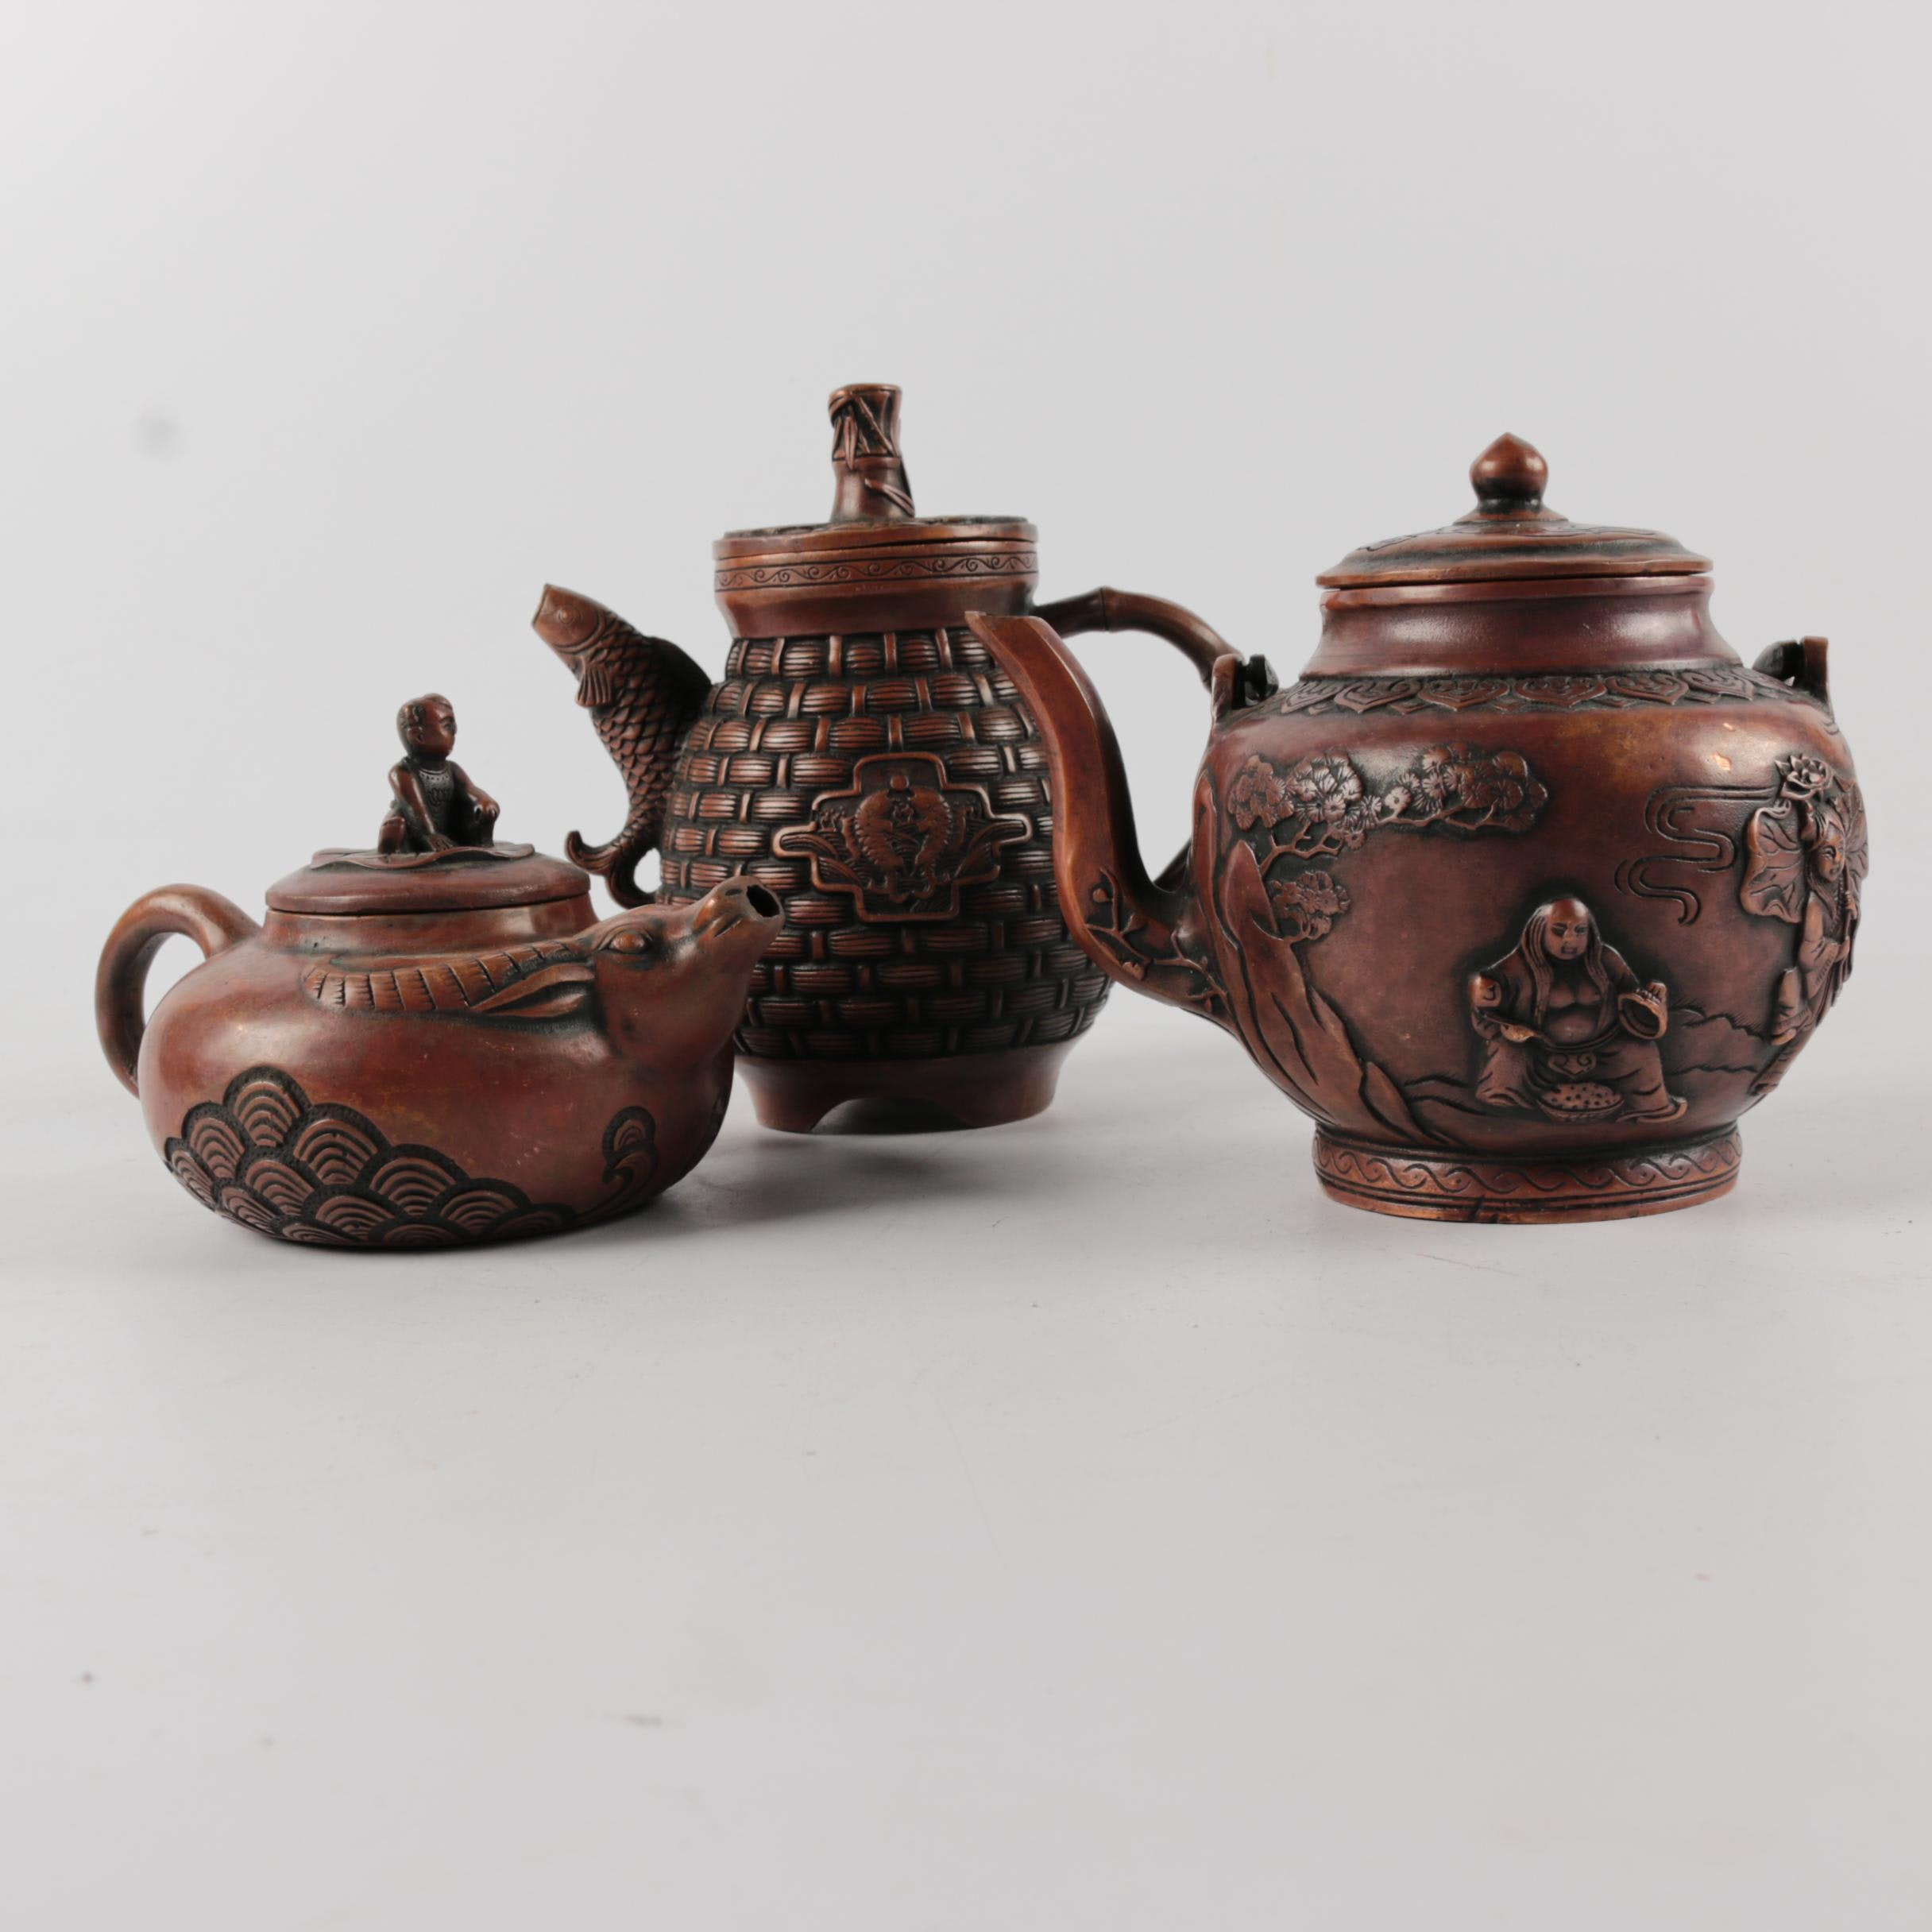 Chinese Bronze Finished Metal Teapots with Embossed Figurative Ornamentation